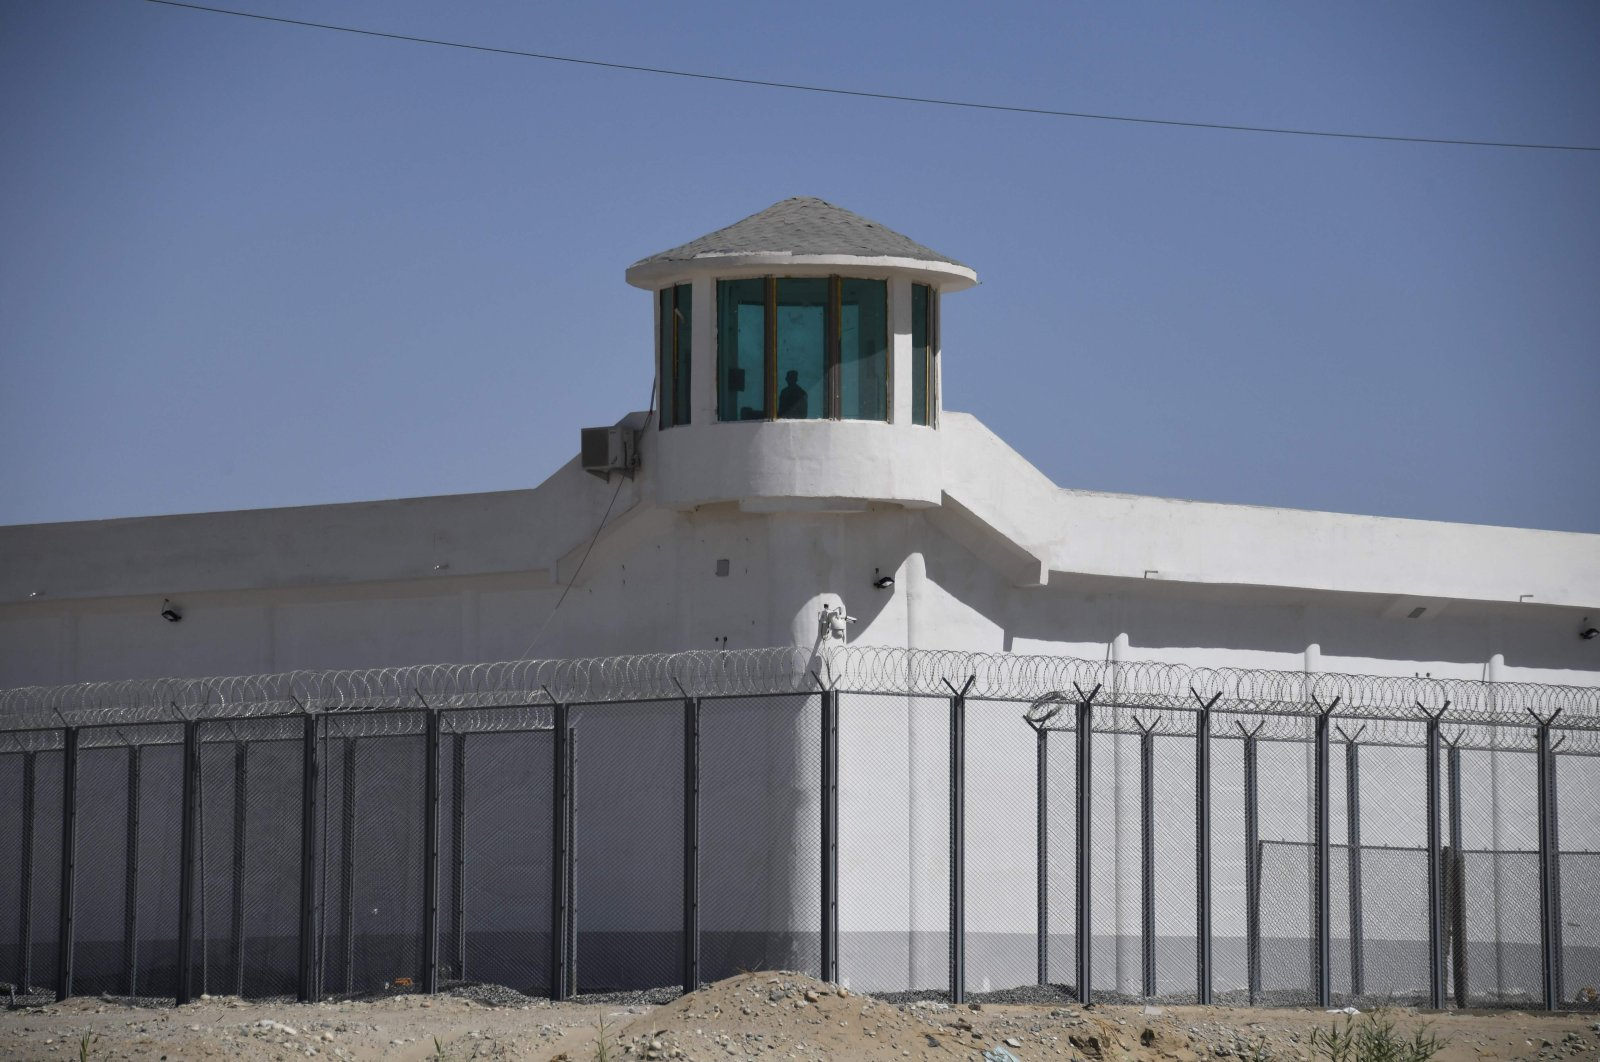 A watchtower on a high-security facility near what is believed to be a re-education camp where mostly Muslim ethnic minorities are detained, on the outskirts of Hotan, in China's northwestern Xinjiang region, May 31, 2019. (AFP Photo / Badung Police)